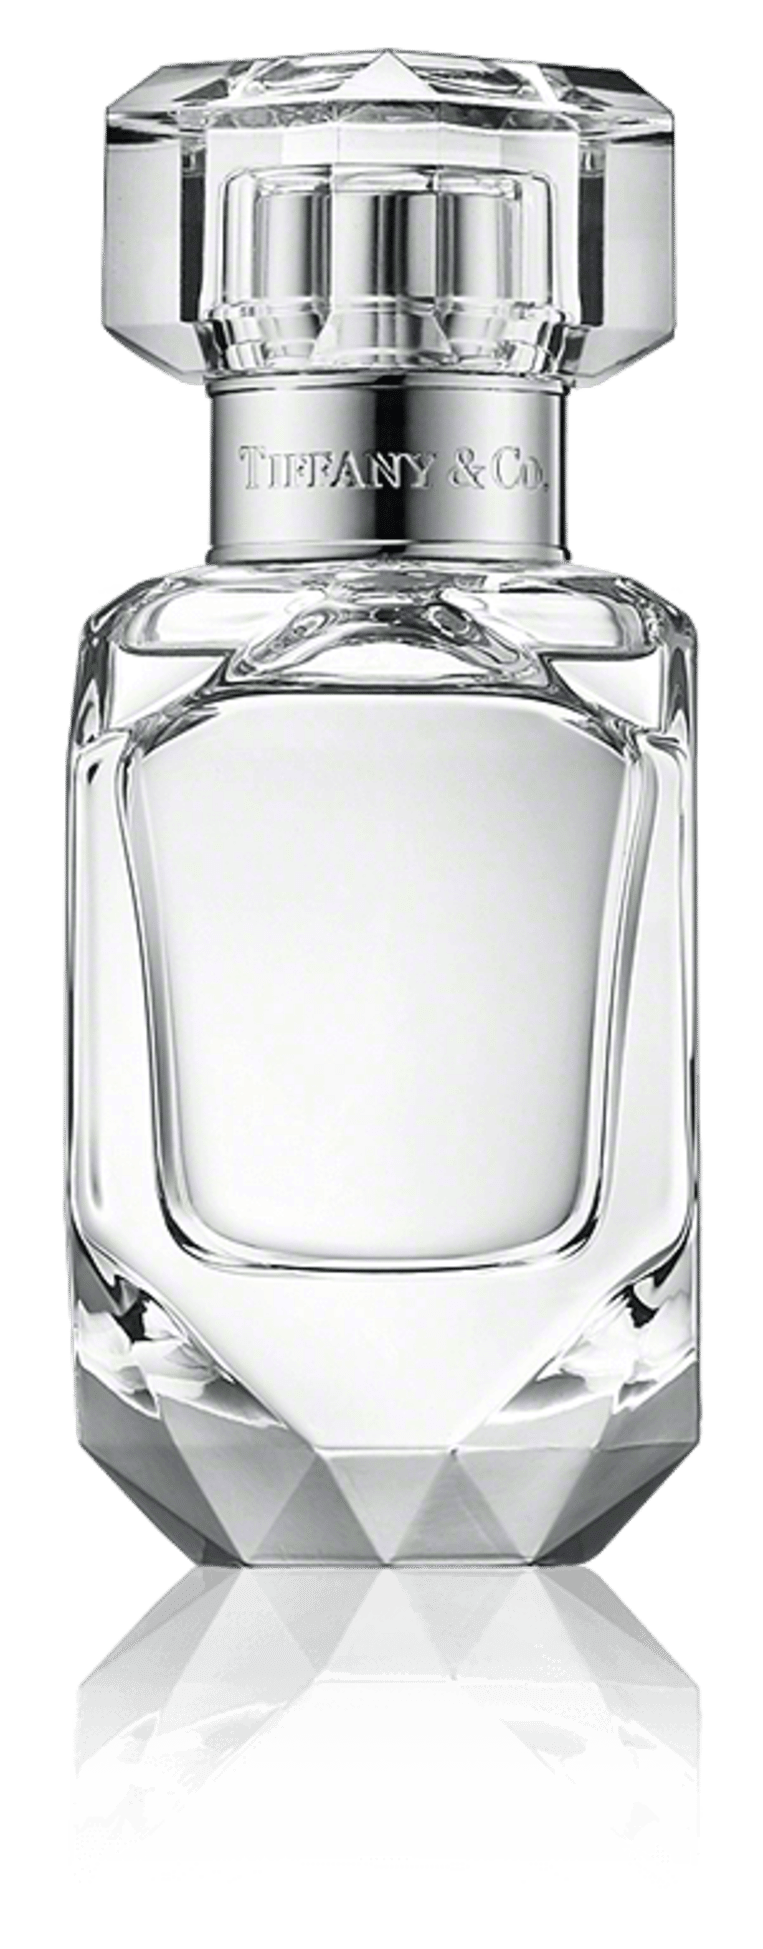 Tiffany & Co.: Sheer Eau de Toilette